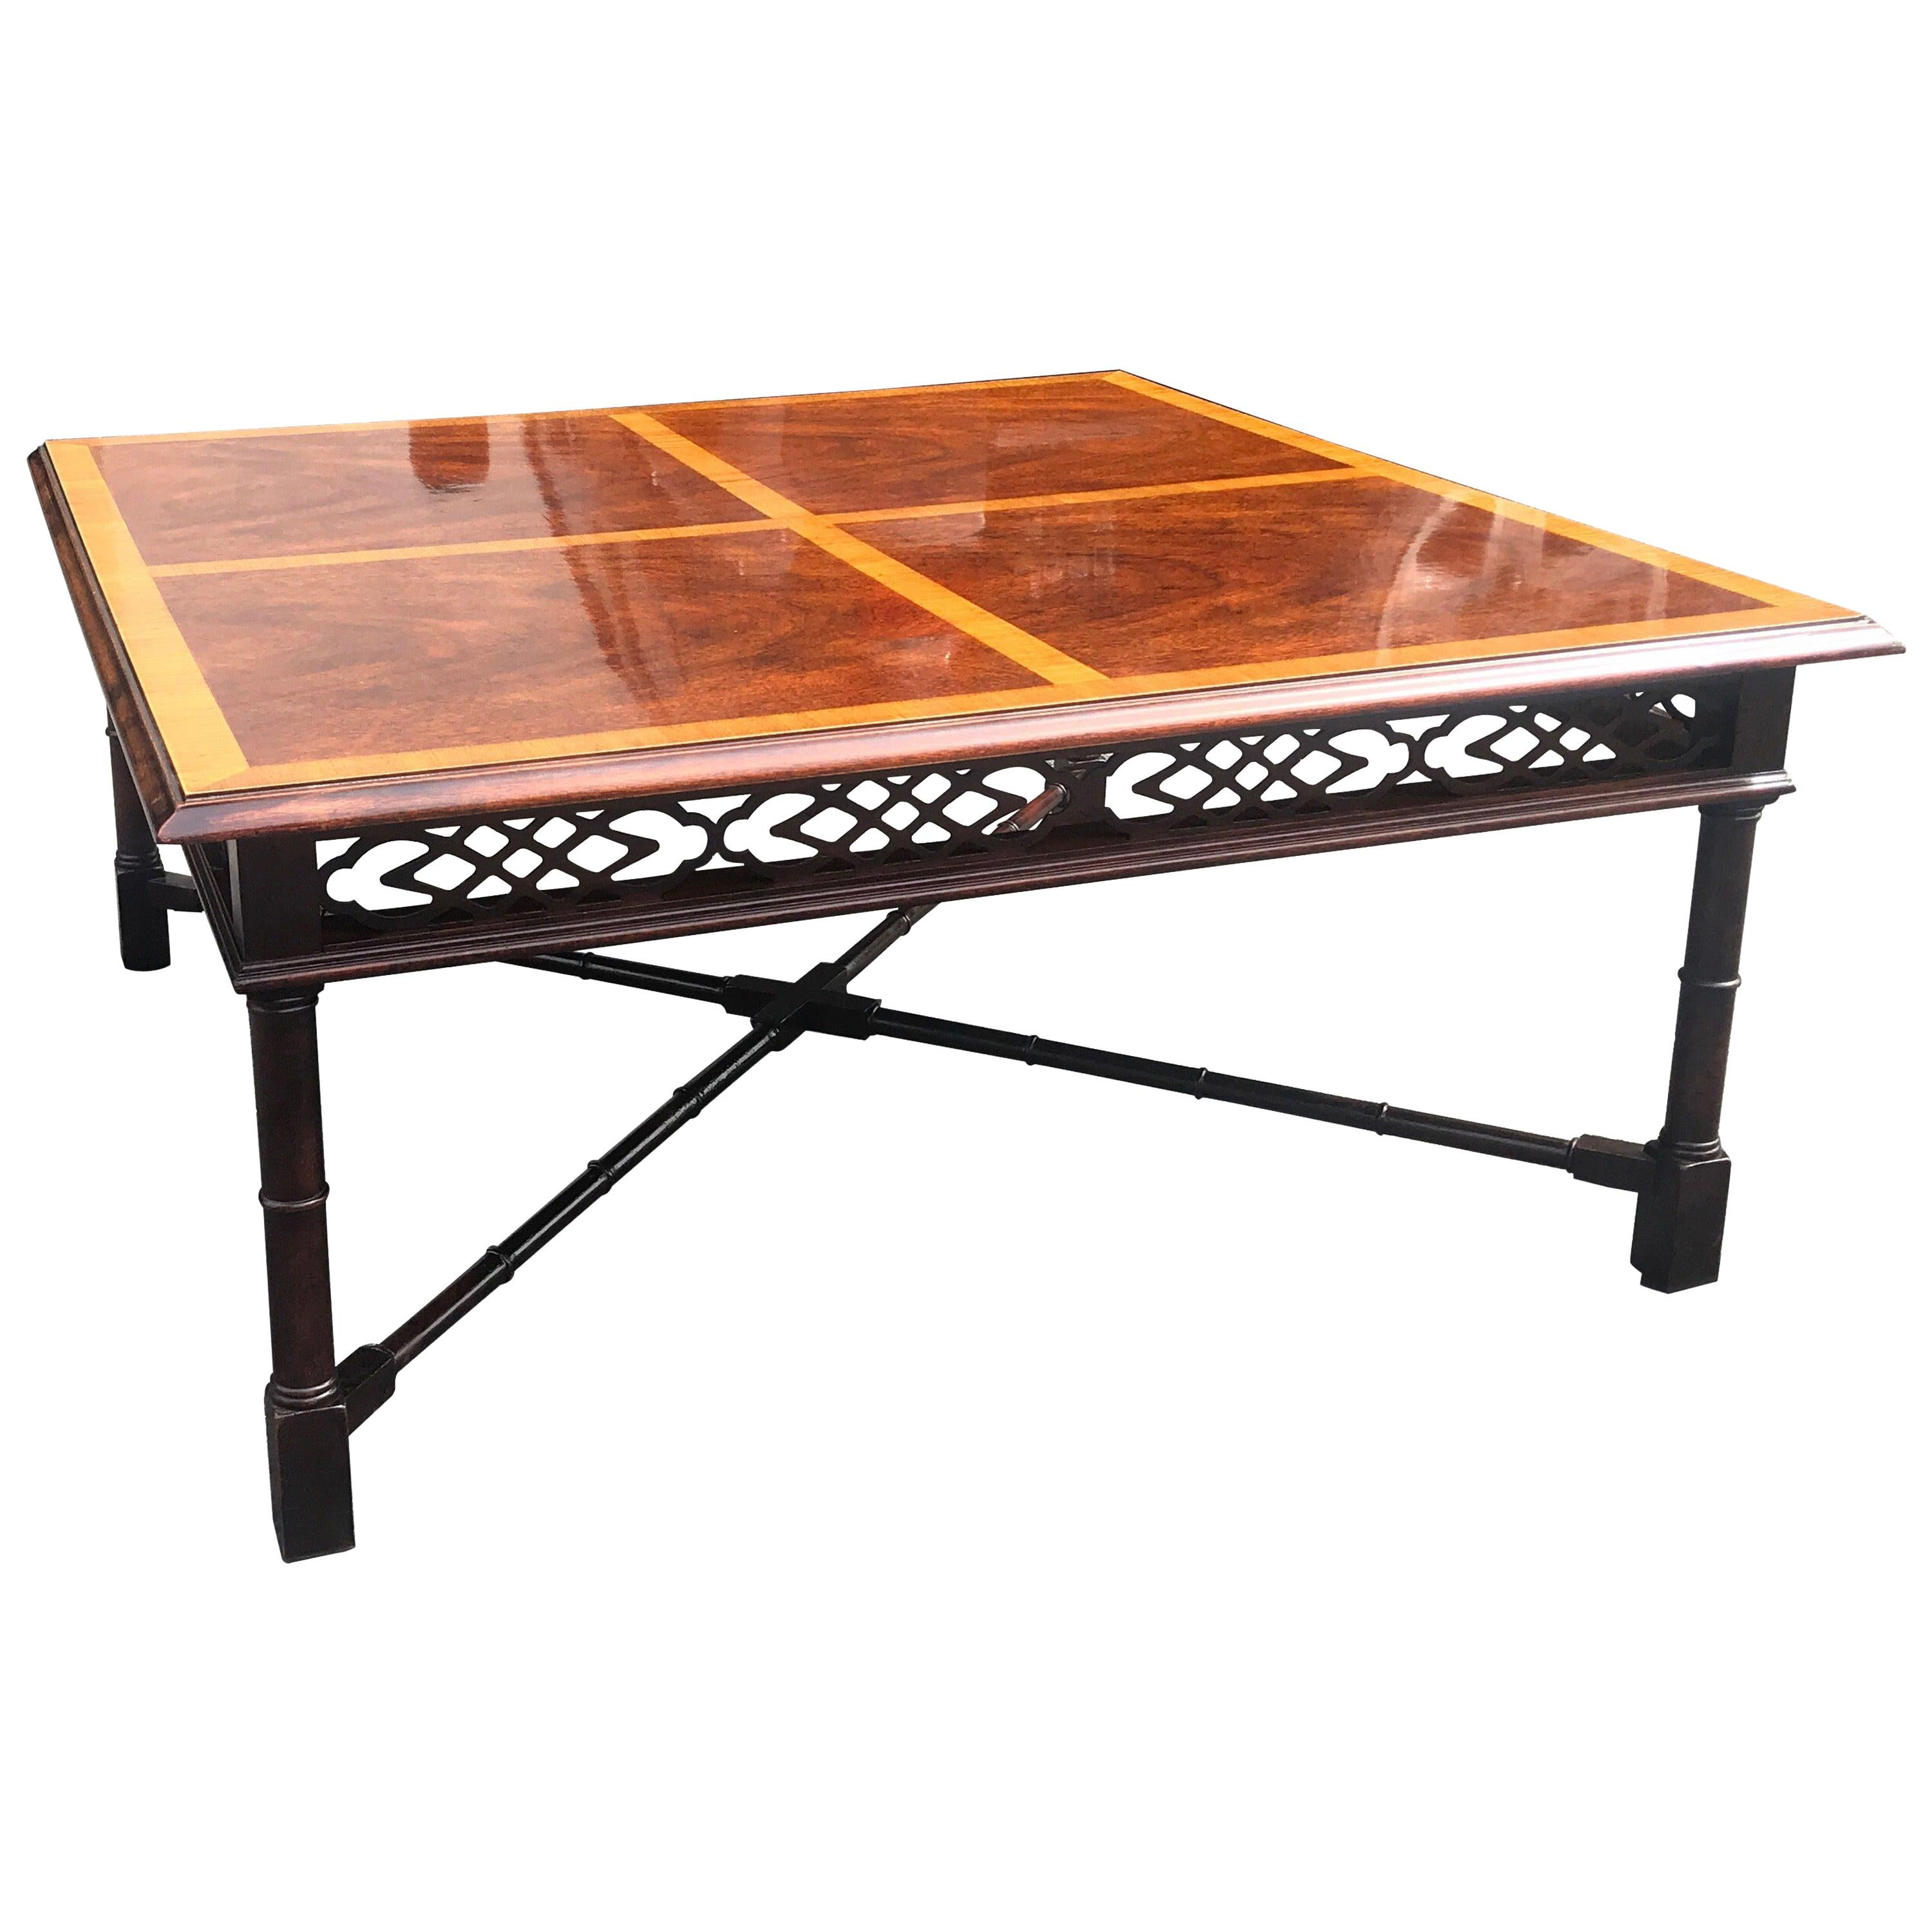 Mahogany and Satinwood Regency Style Square Coffee Table